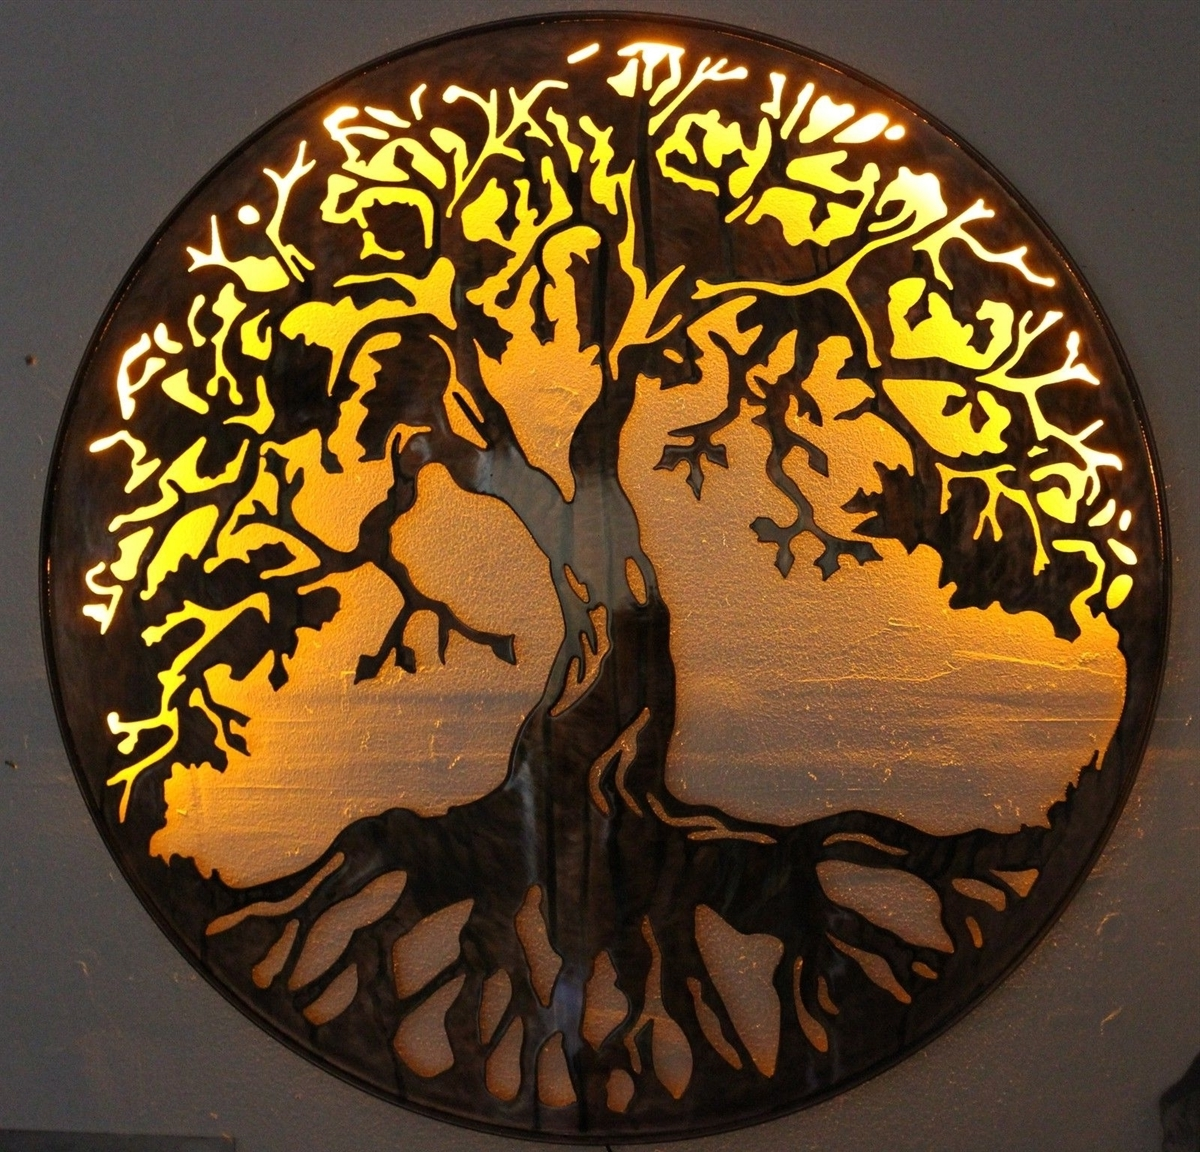 "Of Life Metal Wall Art 24"" With Led Lightshgmw In Well Known Copper Oak Tree Wall Art (View 11 of 15)"